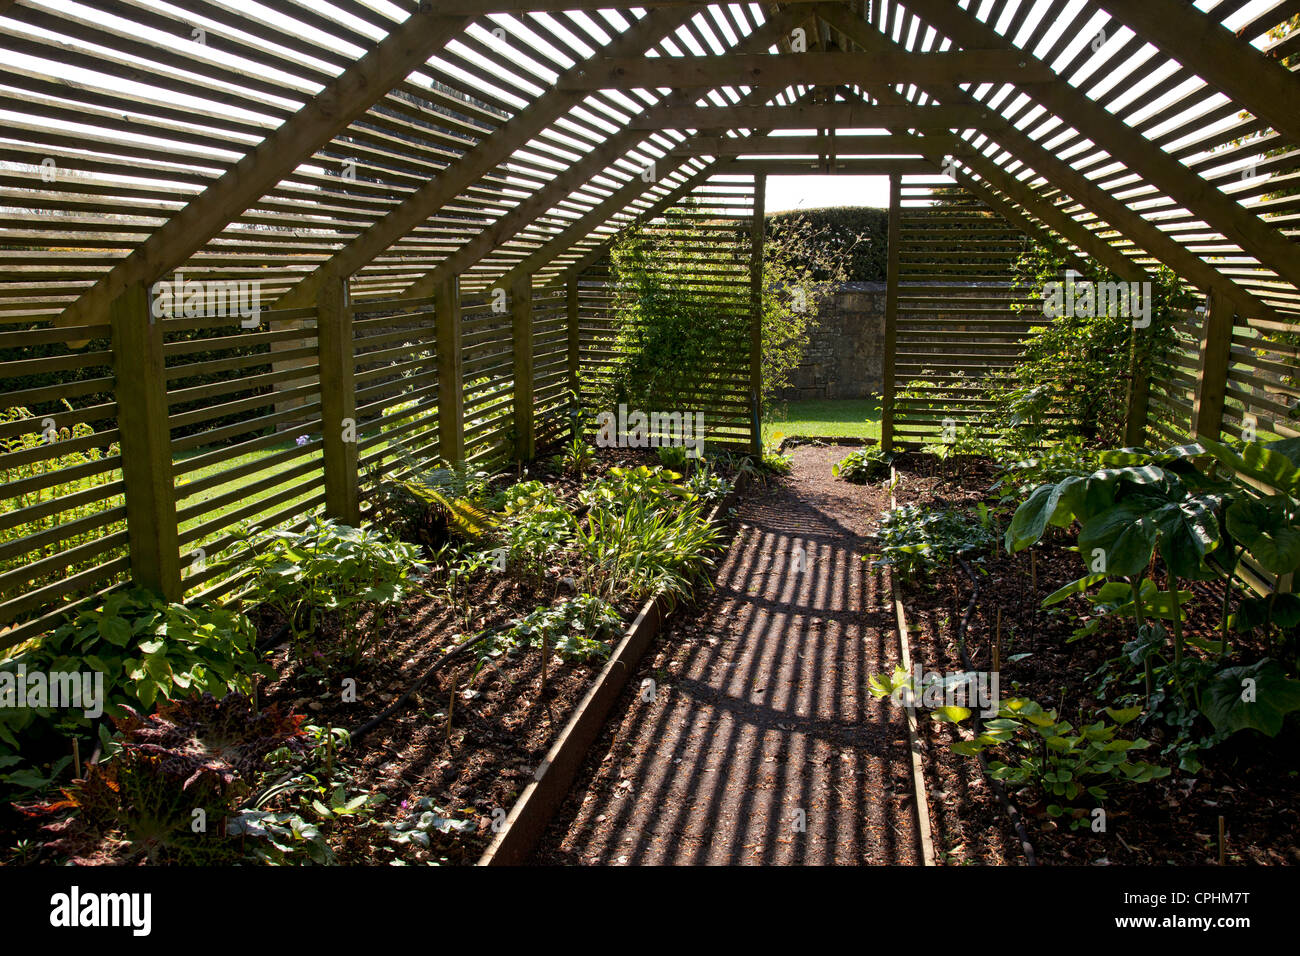 Wooden Slated Plant Shade House Garden England Stock Photo